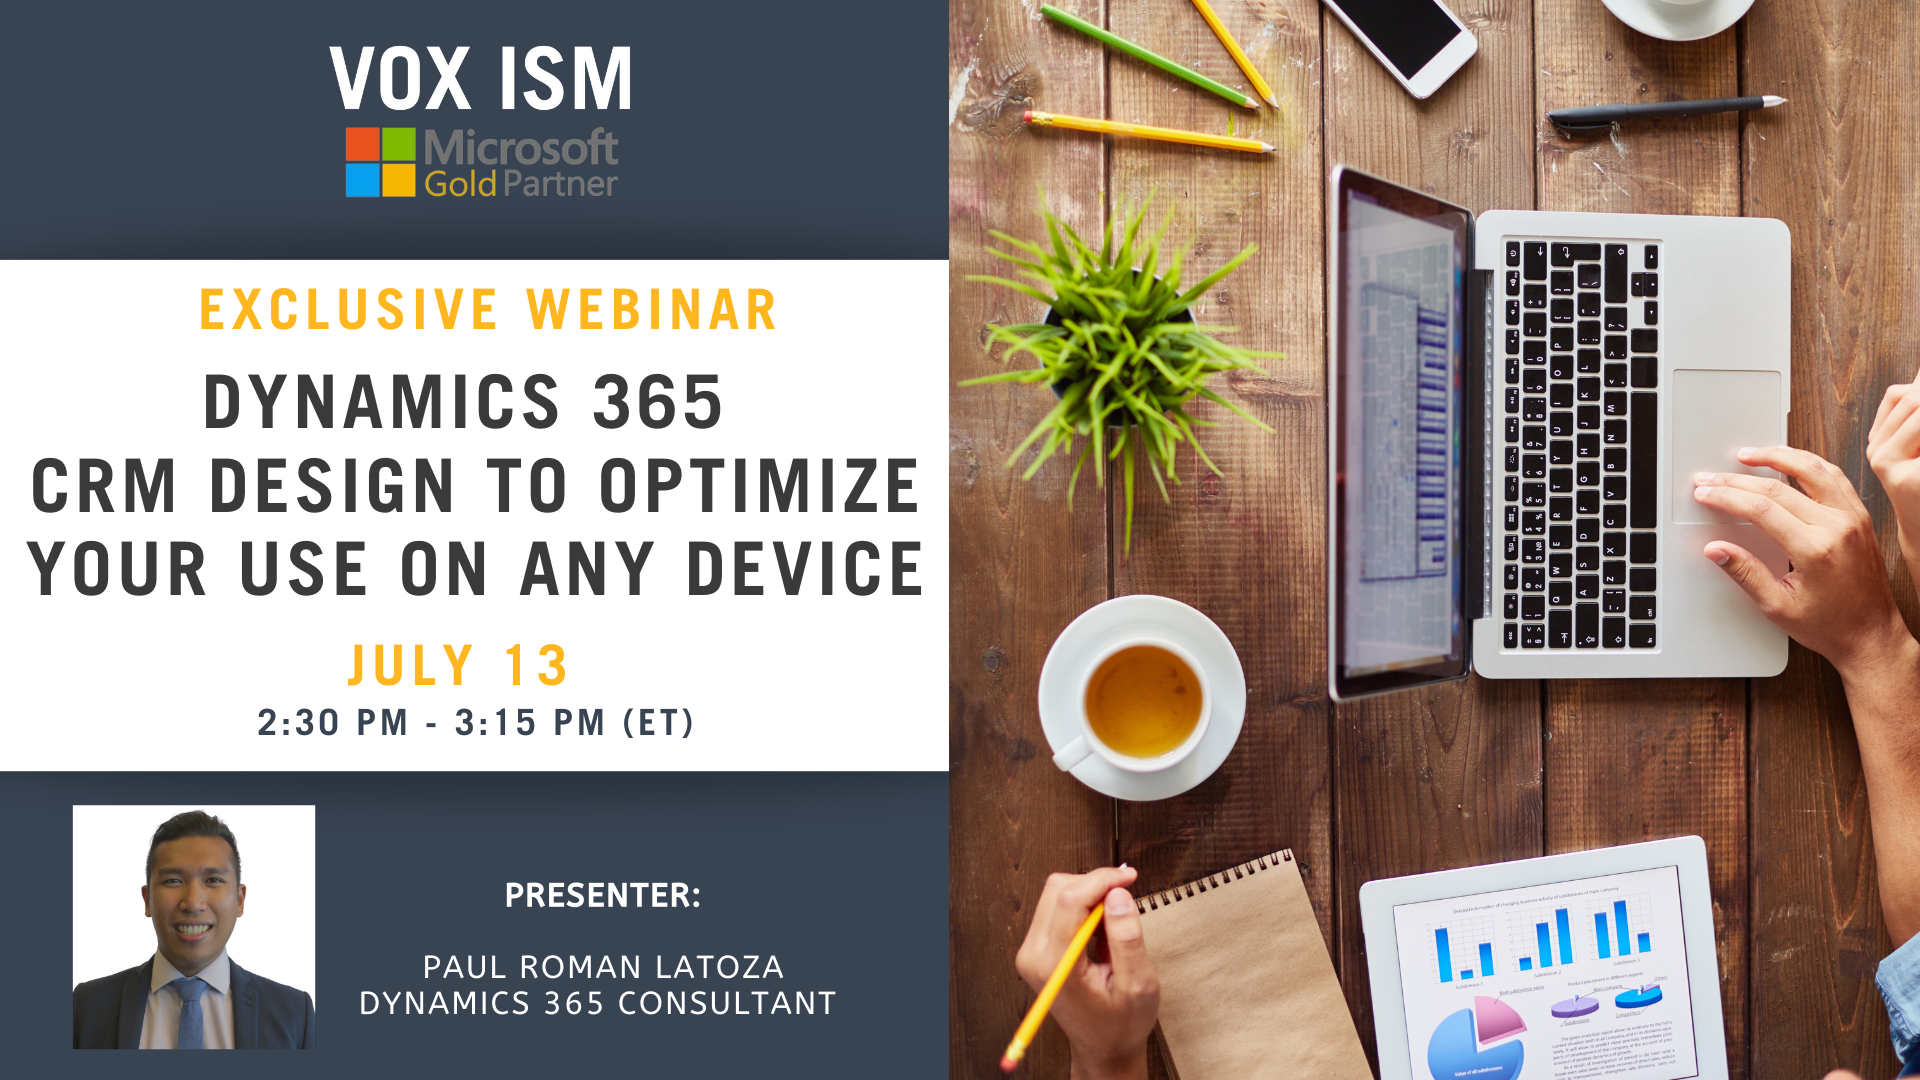 Dynamics 365 CRM design to optimize your use on any device - July 13 - Webinar VOX ISM